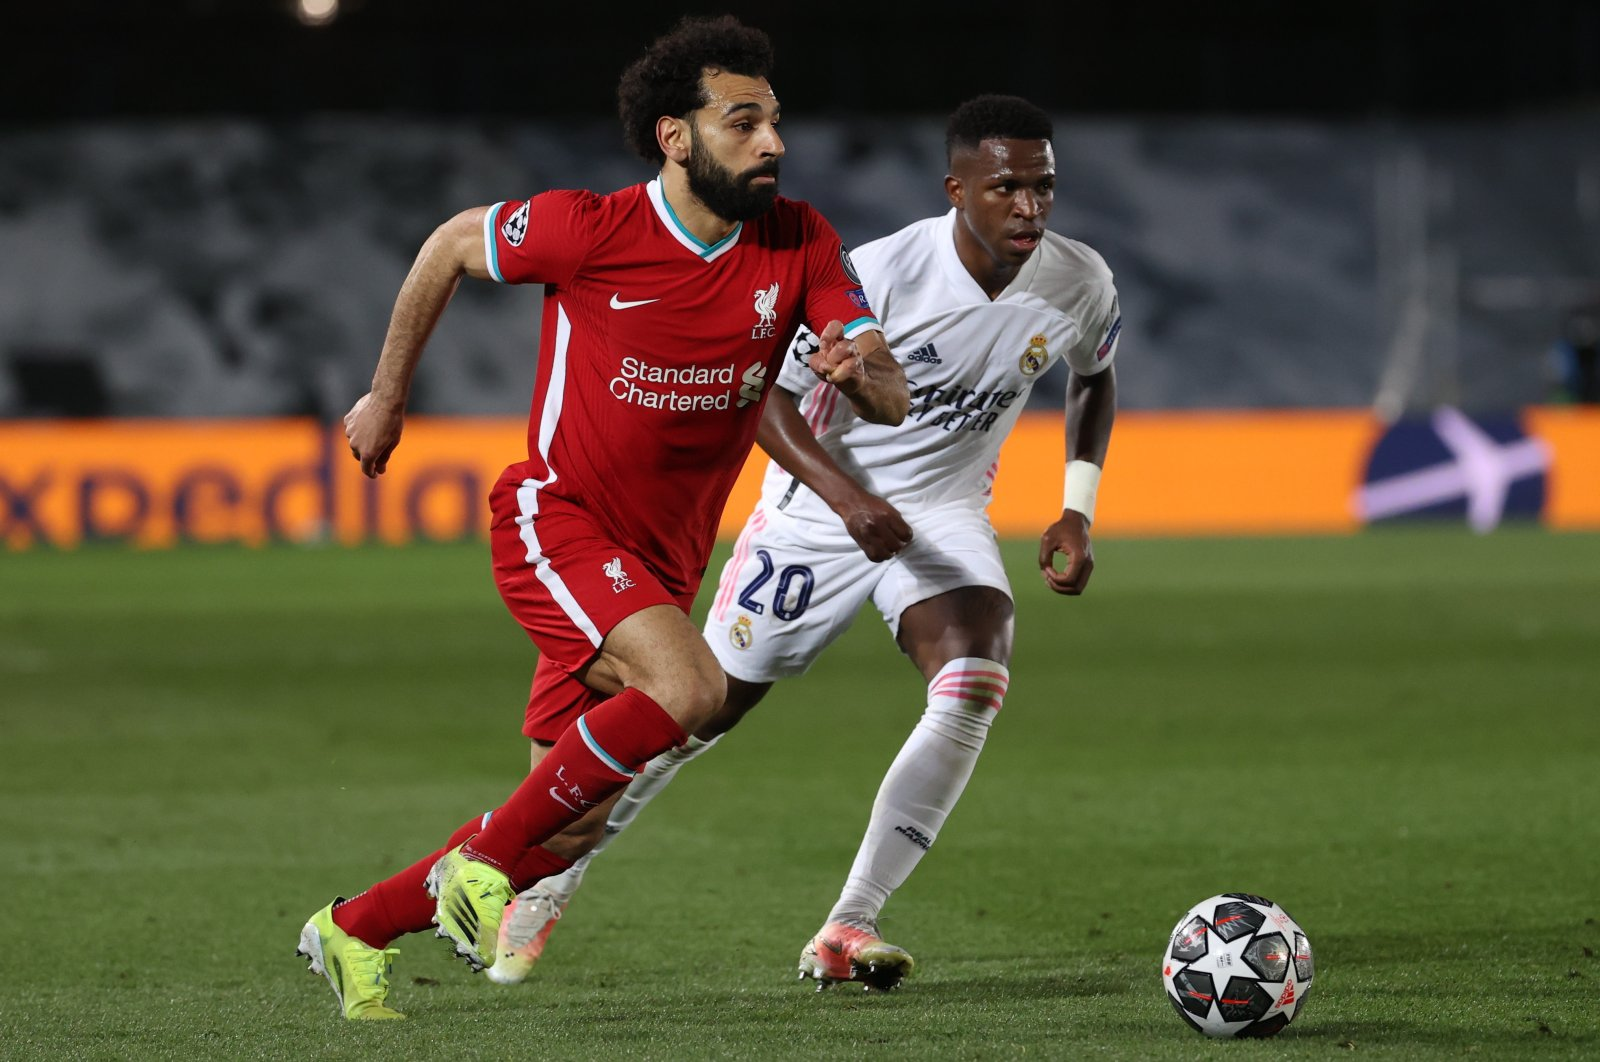 Liverpool striker Mohamed Salah (L) tries to go past Real Madrid's Vinicius Jr. during the UEFA Champions League quarterfinal first leg match at the Alfredo Di Stefano stadium, Madrid, Spain, April 6, 2021. (EPA Photo)